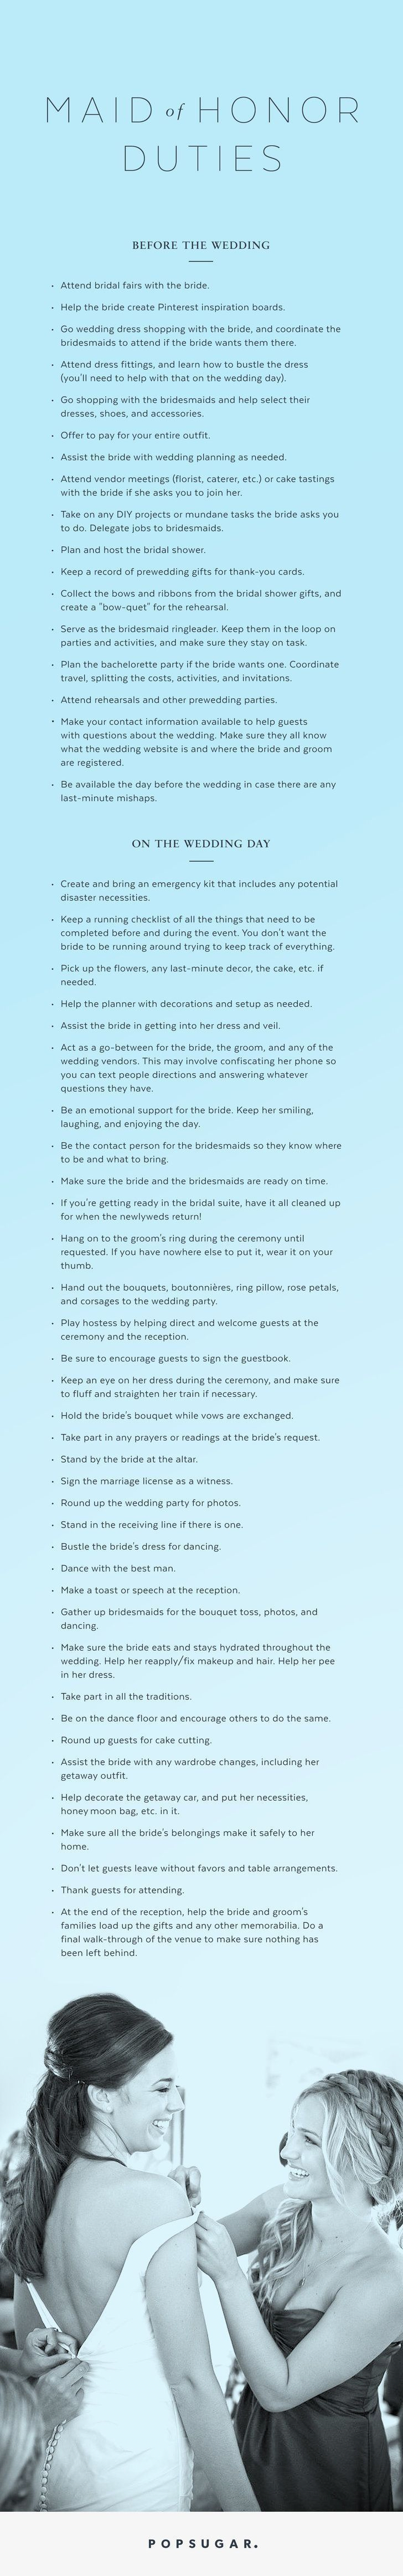 Maid of Honor Checklist to put on your to-do-list!